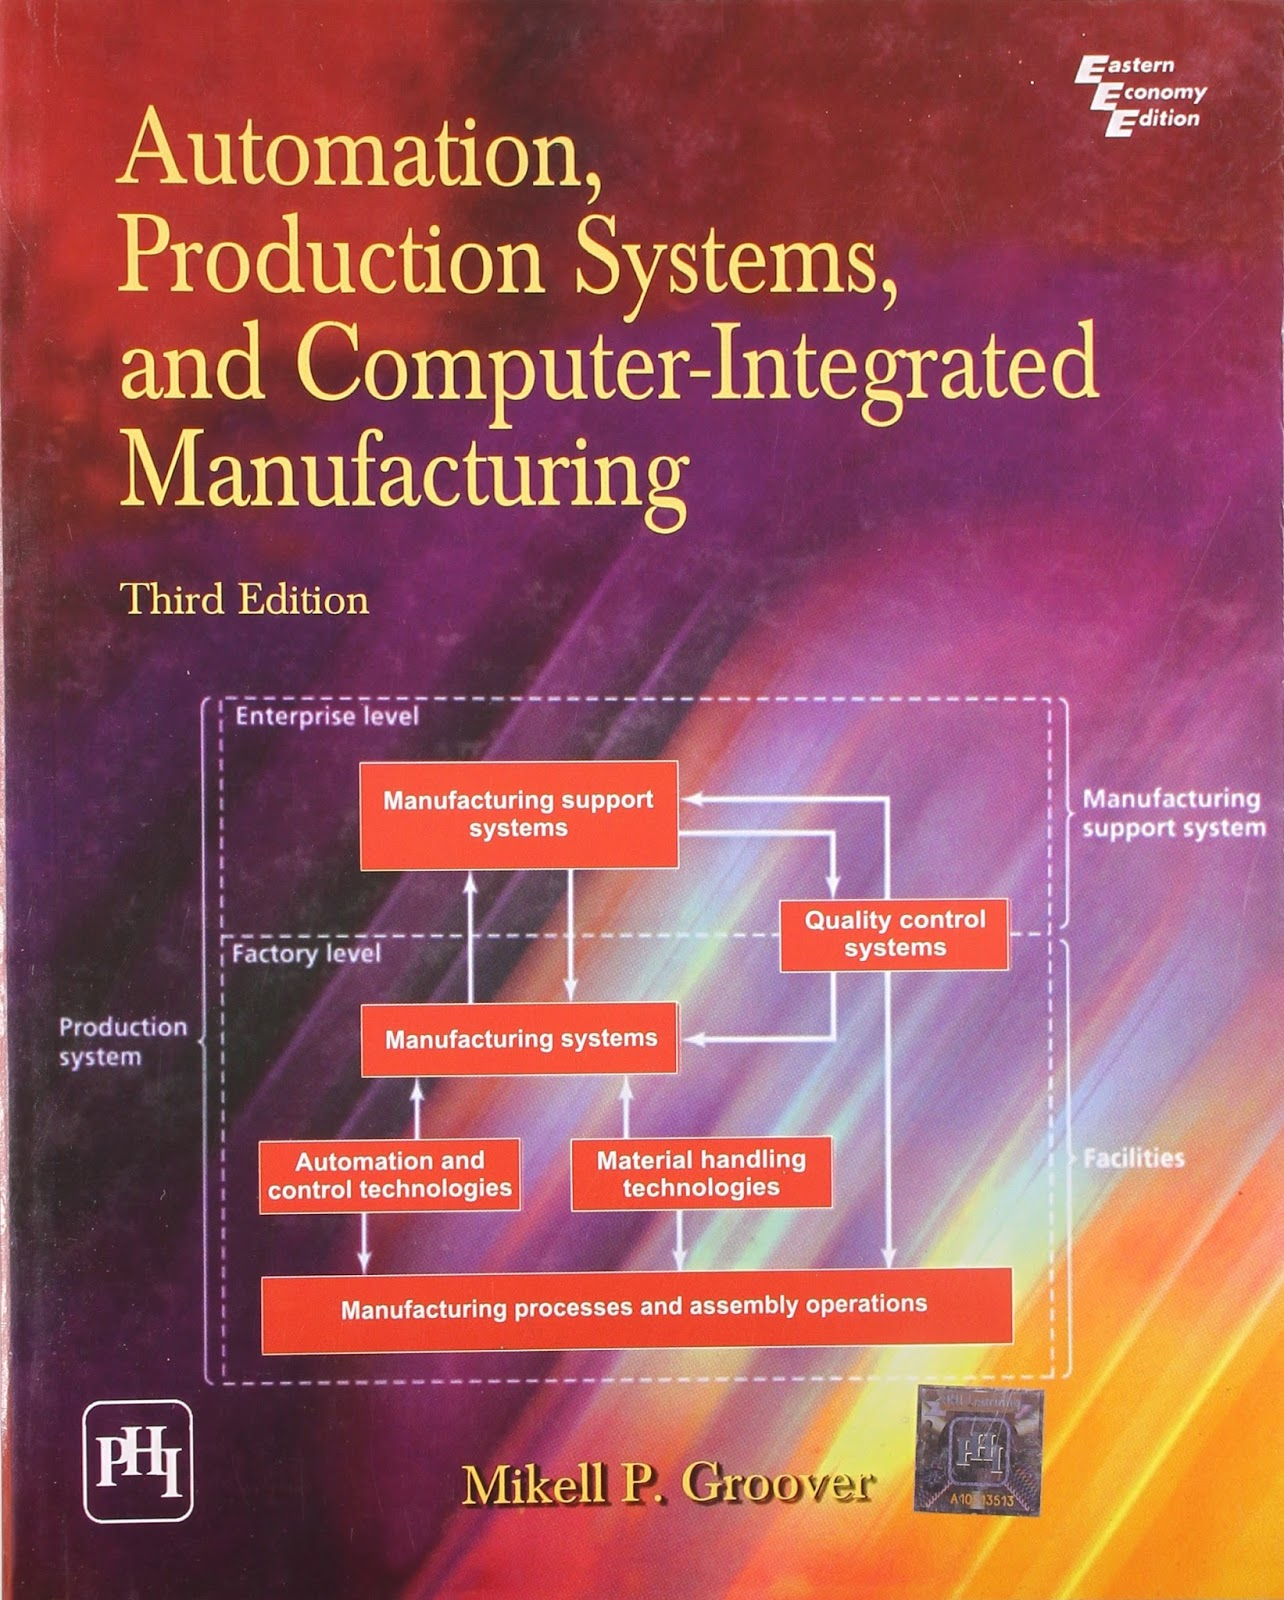 Mikell Groover Solution Manual 1987 Allegro Motorhome Wiring Diagram Automation Production Systems And Computer Integrated Rh Bscengineeringbooks Blogspot Com Quintin George